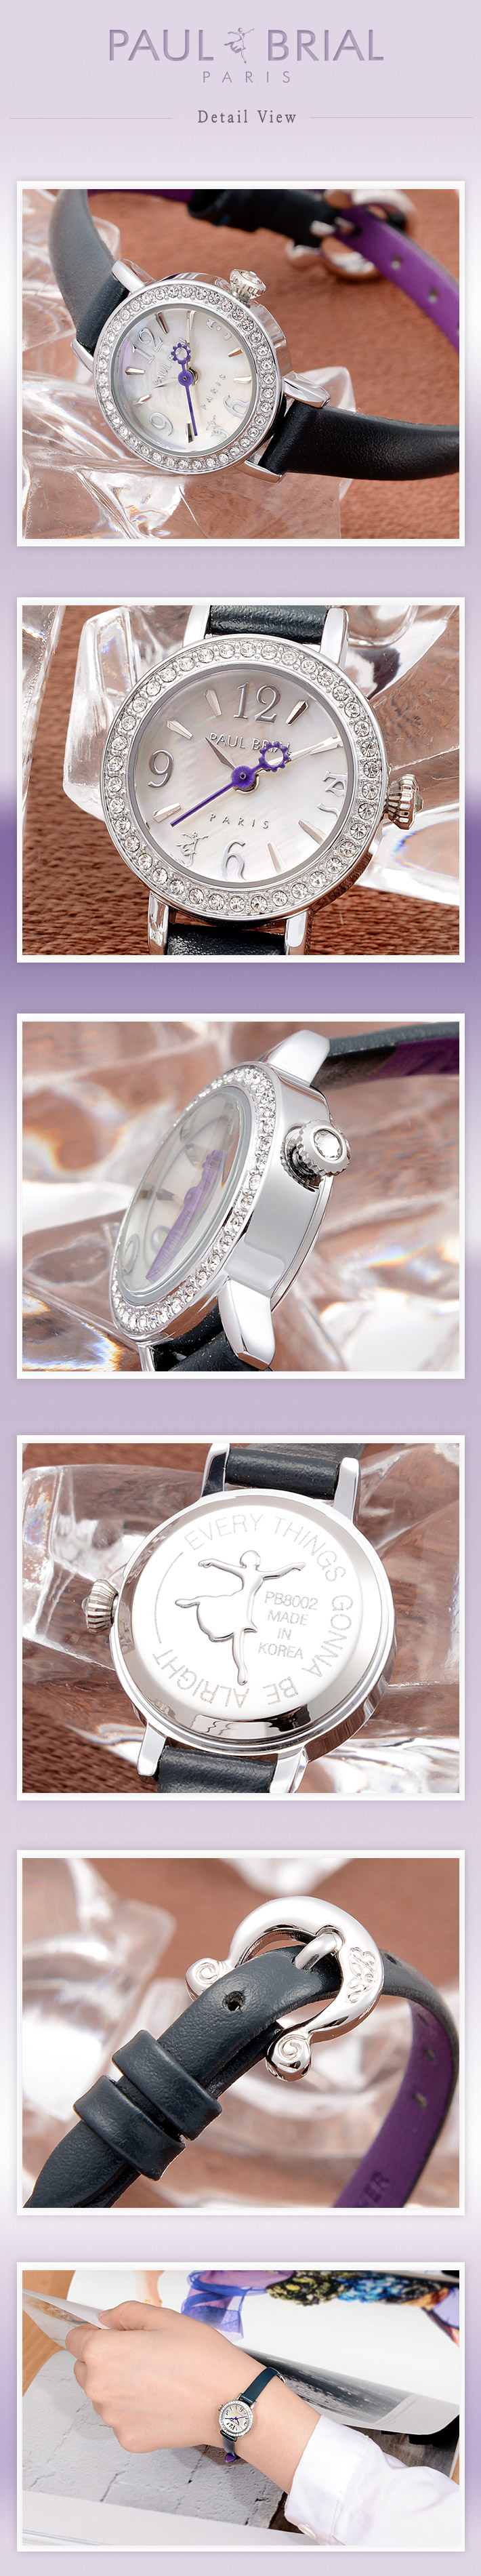 [ PAUL BRIAL ] KOREA MADE HIGH QUALITY LADIES SILVER NAVY LEATHER BAND WATCH PB8002WTNV_A MARSEILLE